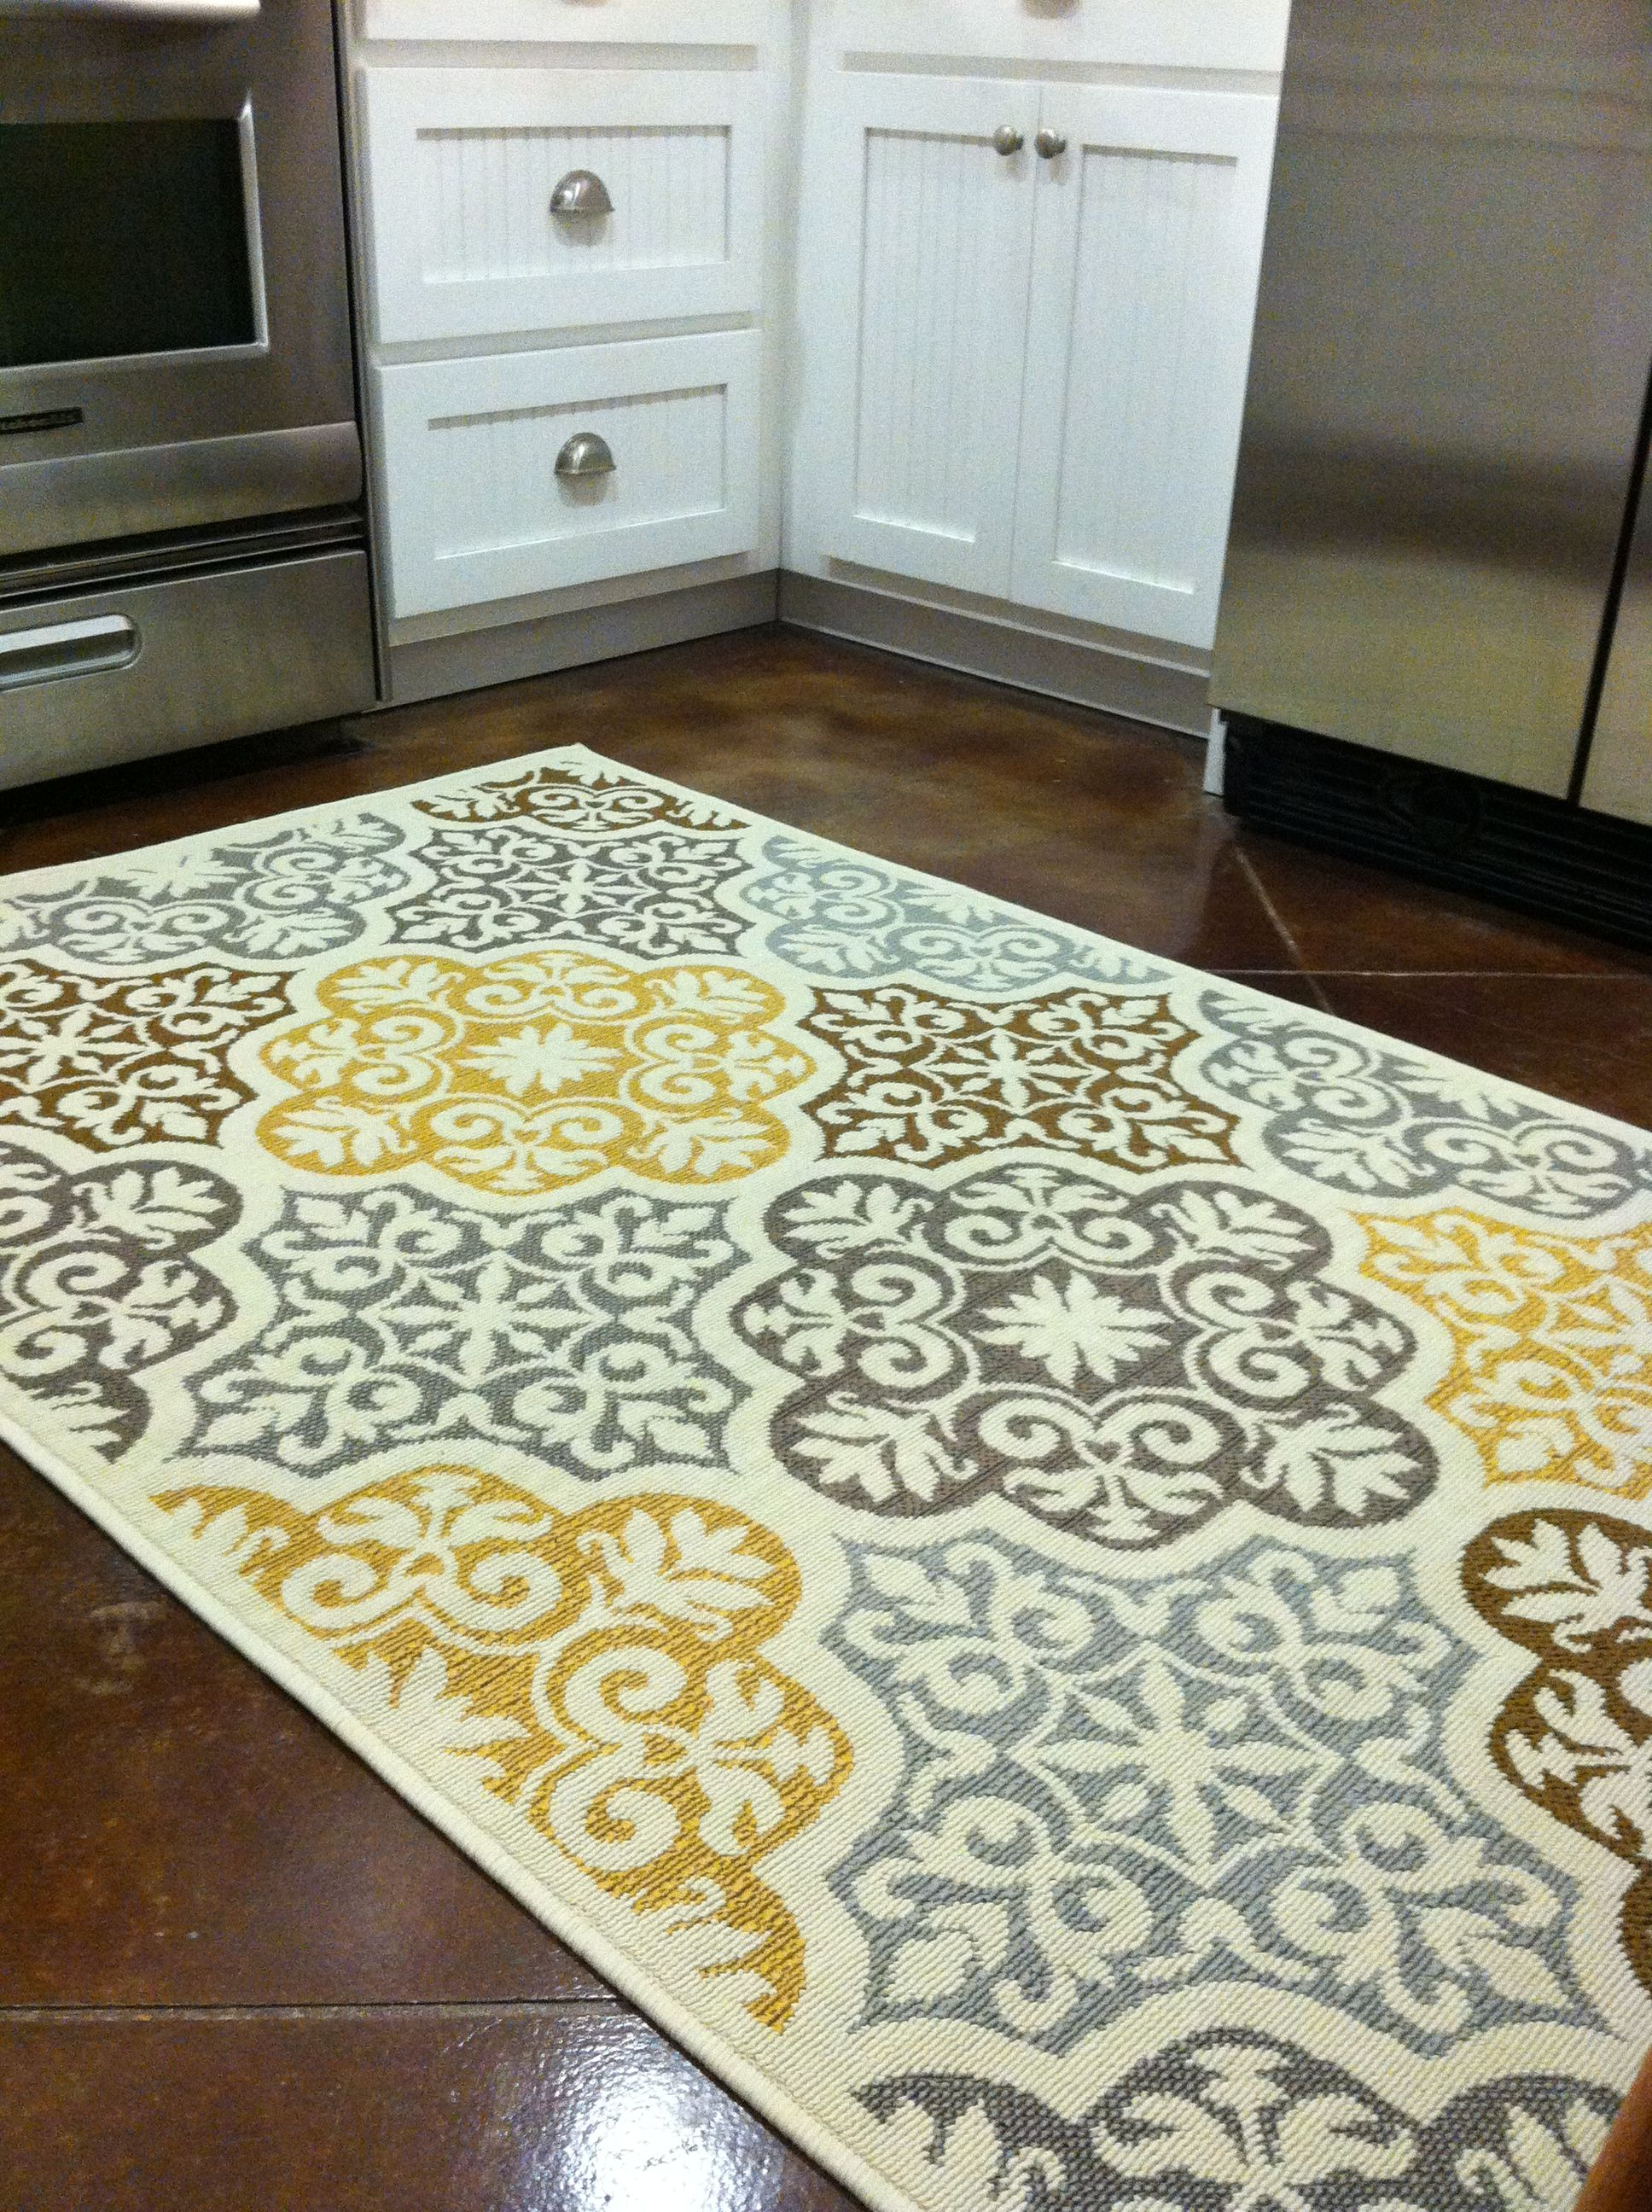 Kitchen Rug Purchased From Overstock Blue Grey Yellow Brown